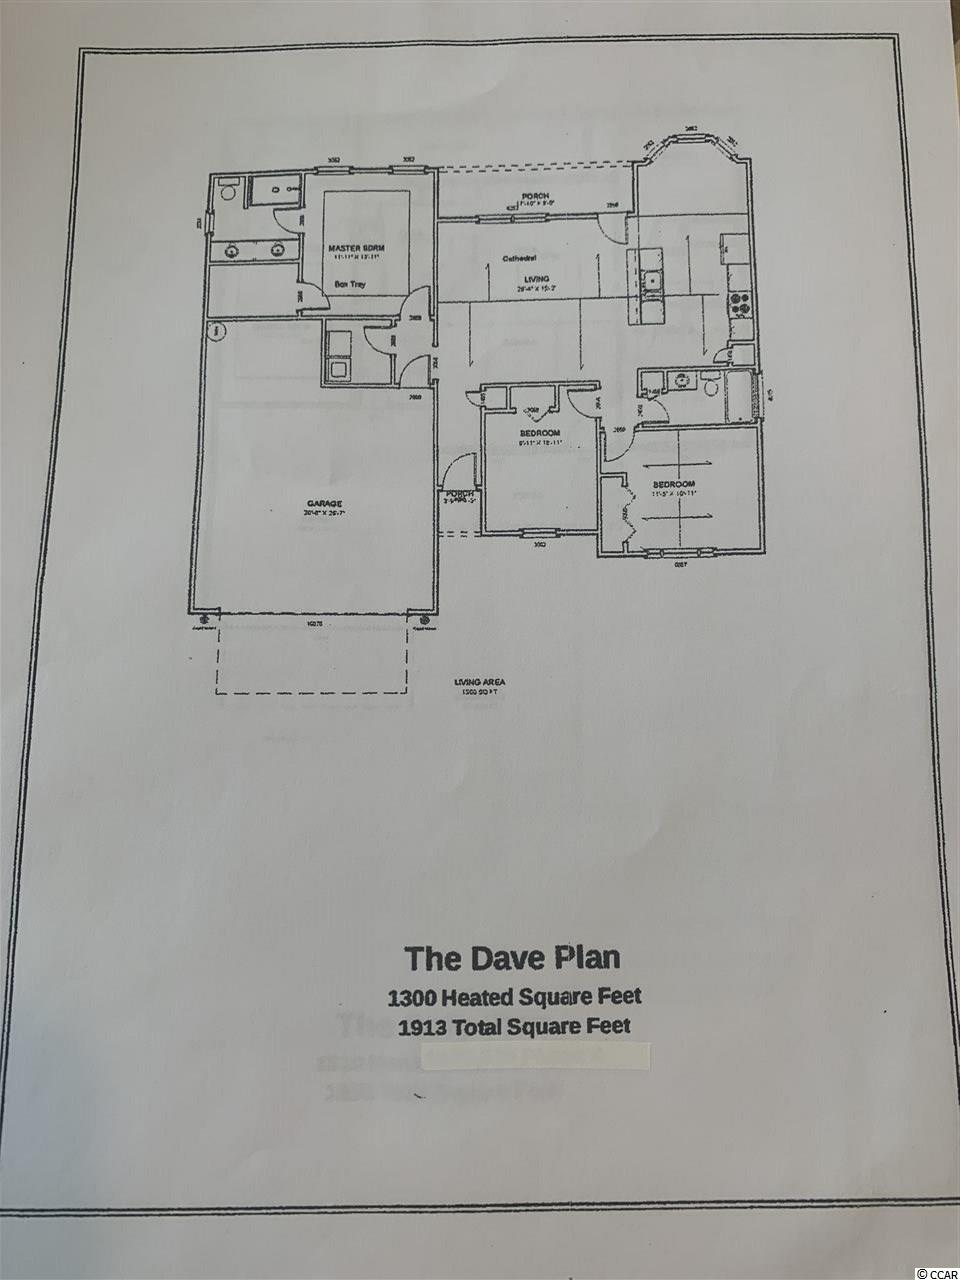 The Dave Floor Plan. This phase of Elmhurst includes natural gas, and this home will have a gas range, gas heat, and tanked hot water heater as part of the standard features. The Dave floor plan features an open kitchen, custom made cabinets with crown molding and knobs, stainless steel appliances, dinning area with bay window. A split bedroom floor plan, with spacious bedrooms,  a large master suite with tray ceiling, and an oversized  walk in closet. The master bath features a raised vanity with double sinks, and a large walk in shower. Foyer, with coat closet, a laundry room, and a covered rear porch( that can be screened) with patio. The Elmhurst subdivision is located in Central Conway, within minutes of historic downtown Conway and just 20 minutes to the beach. HOA restrictions are minimal, Boats and RVs will be allowed on certain lots. We have other floor plans, homes under construction available to walk through, and inventory homes available. Listing Agent available daily by appointment.